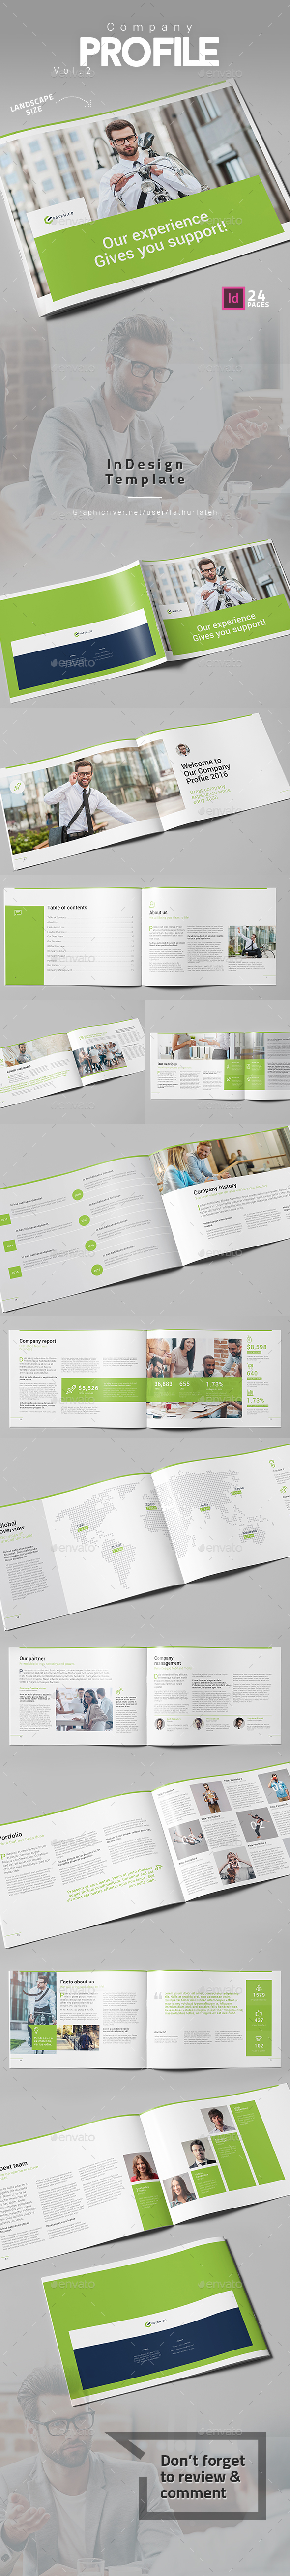 Company Profile Vol.2 Landscape - Corporate Brochures